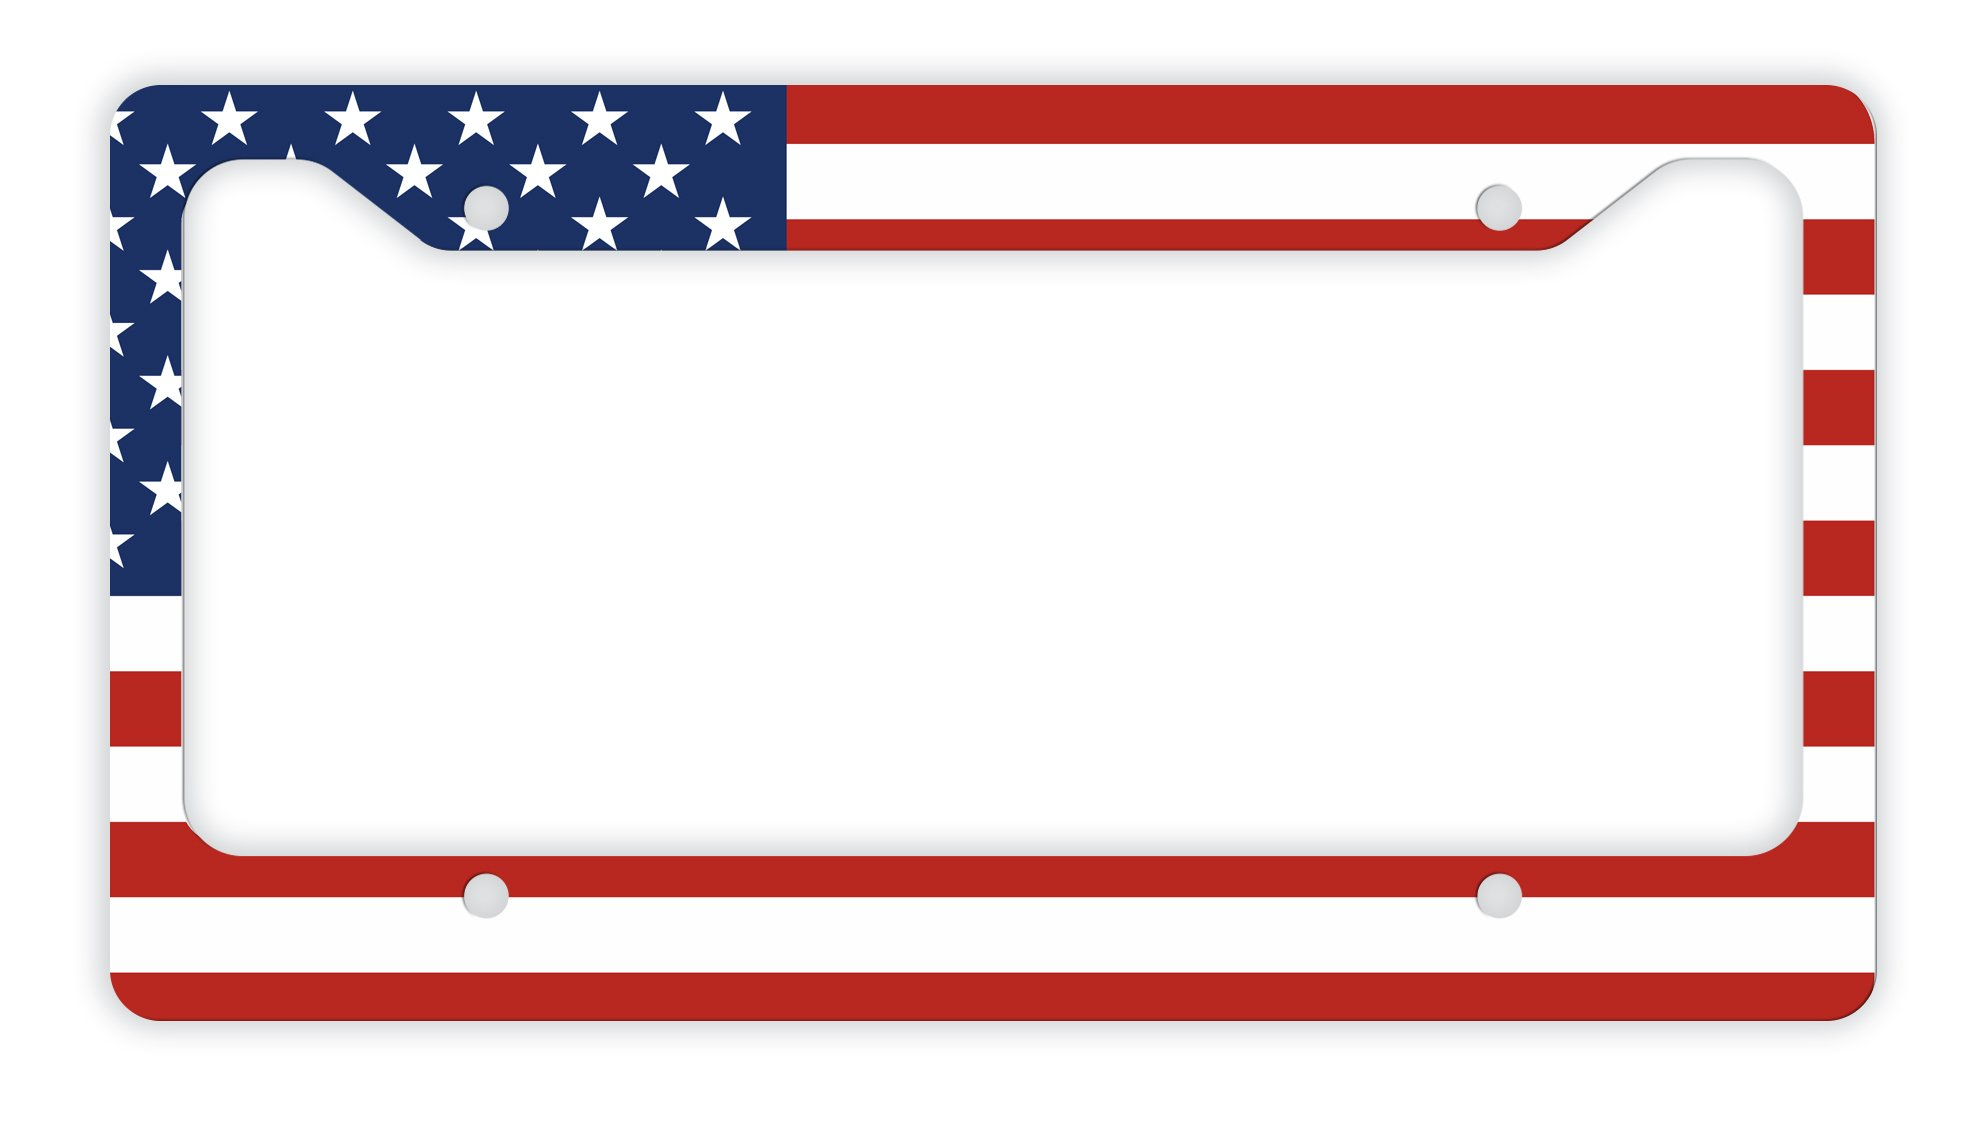 e15bdd996f1 Get Quotations · ThisWear USA License Plate American Patriotic USA Flag  License Plate Veteran Patriot Novelty License Plate Frame